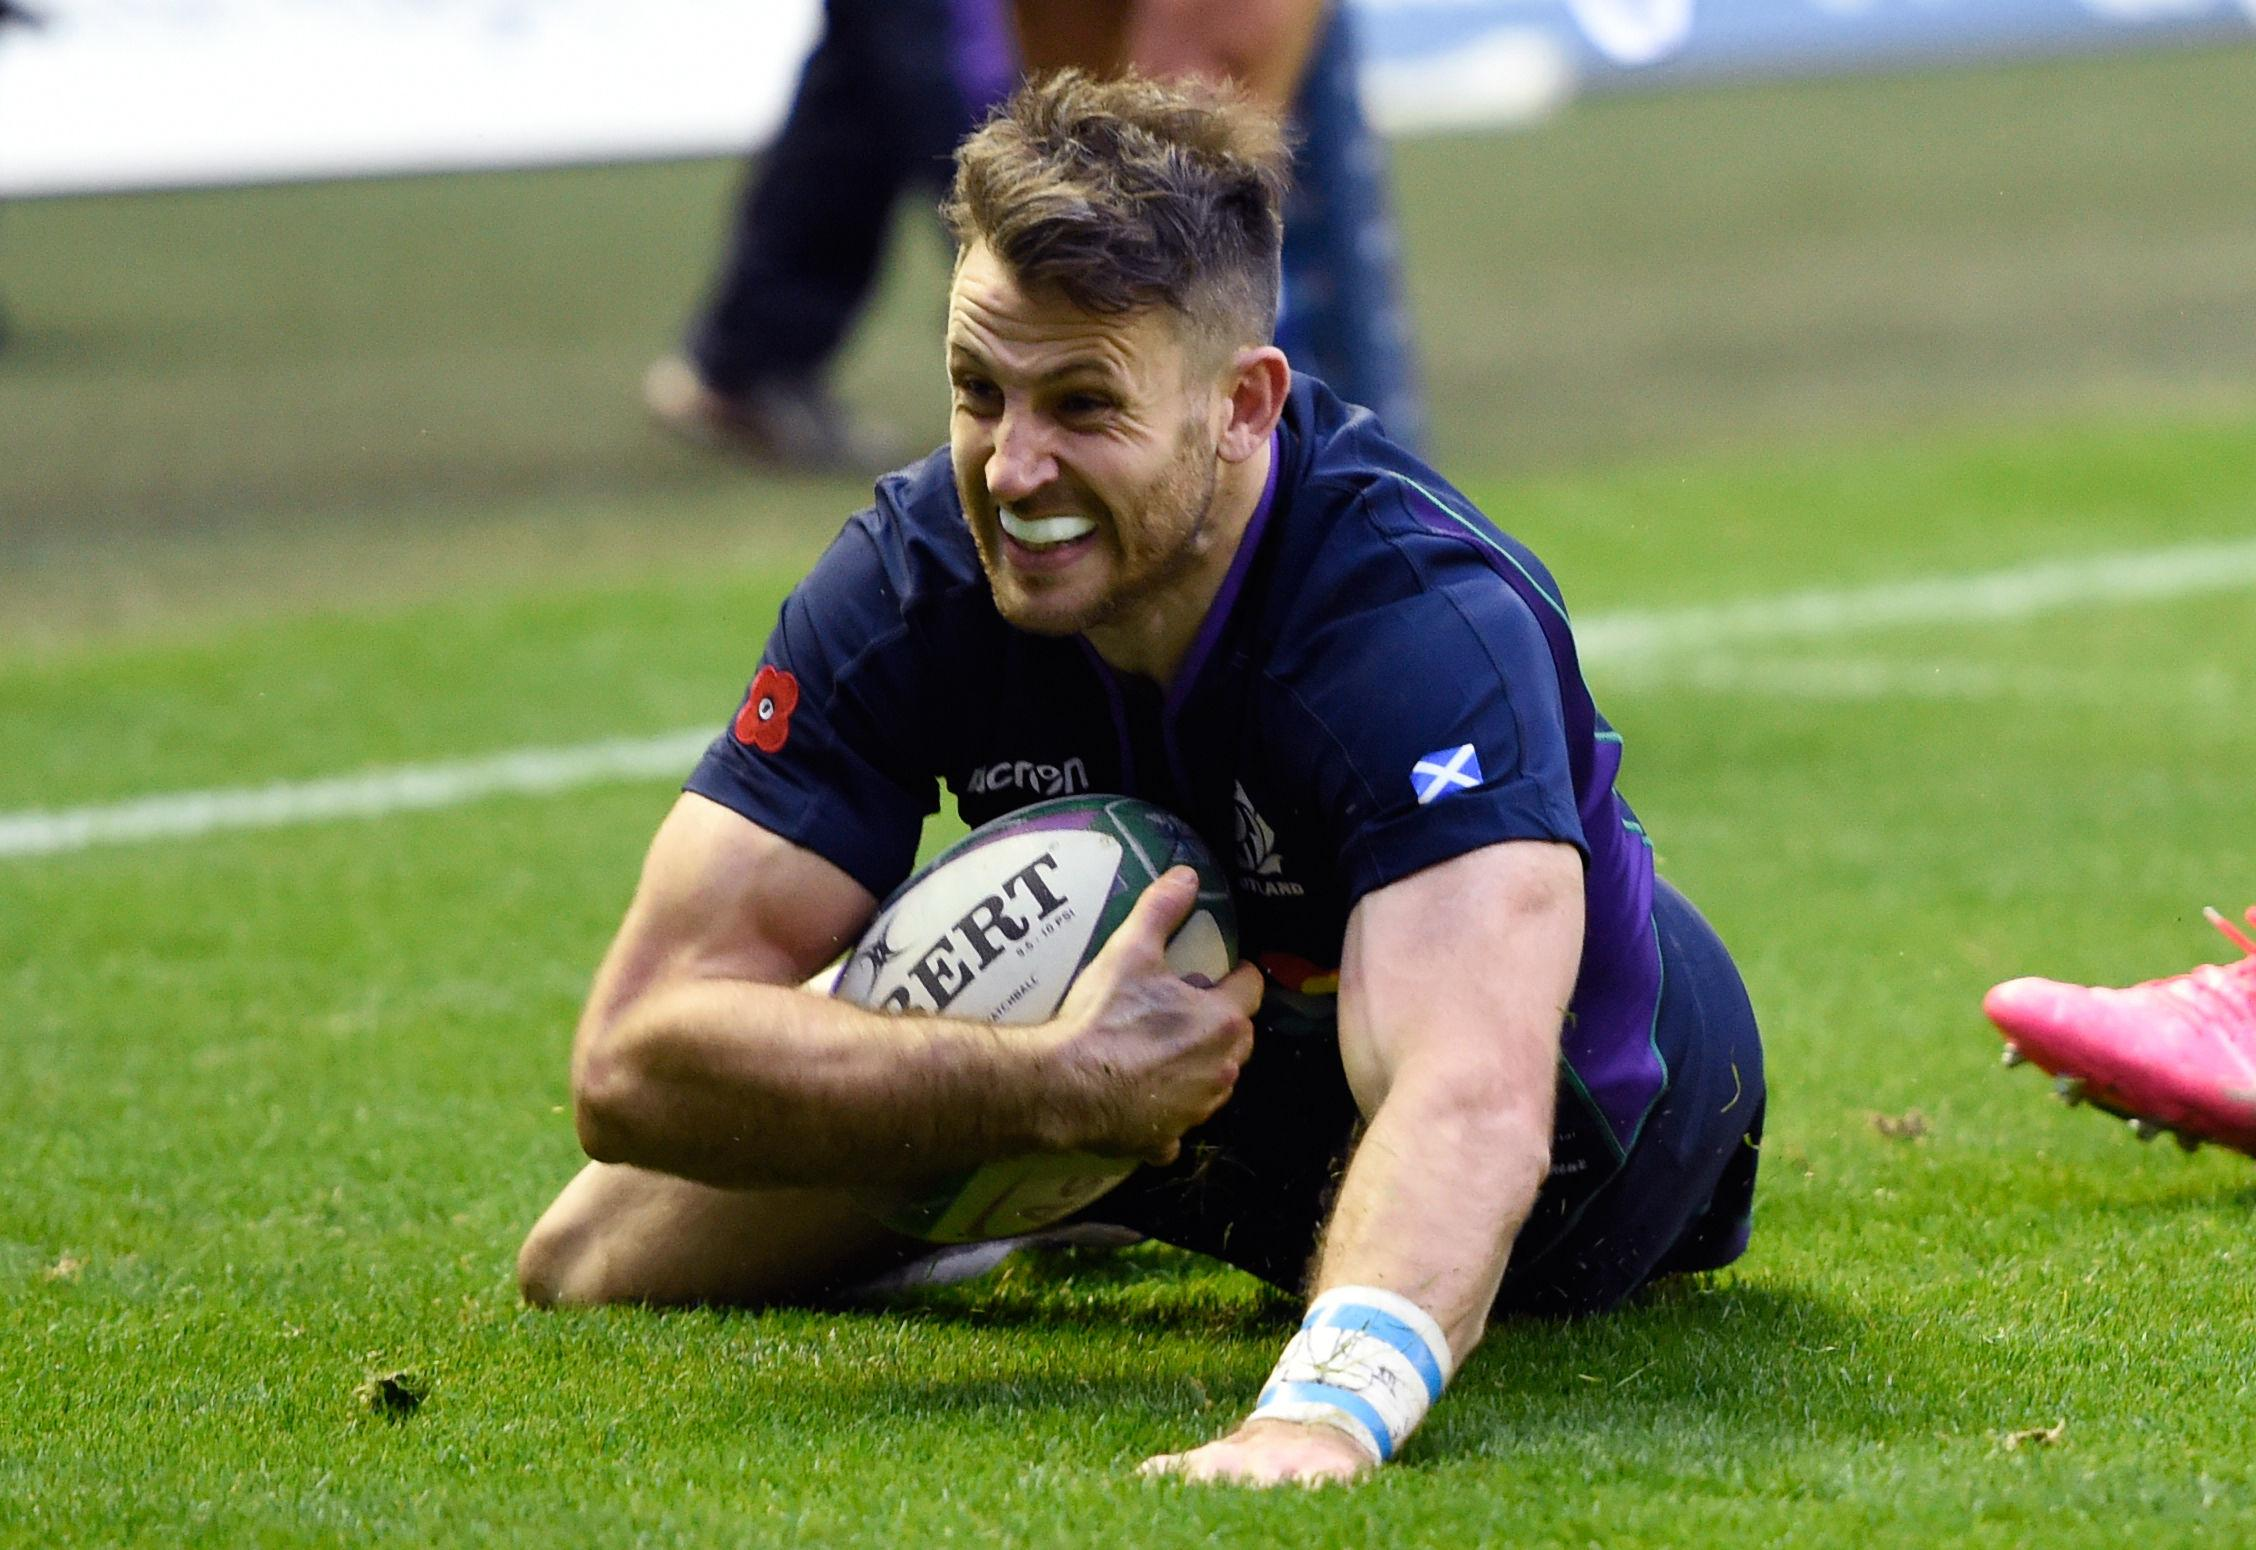 Scotland star Tommy Seymour scored a hat-trick of tries against Fiji